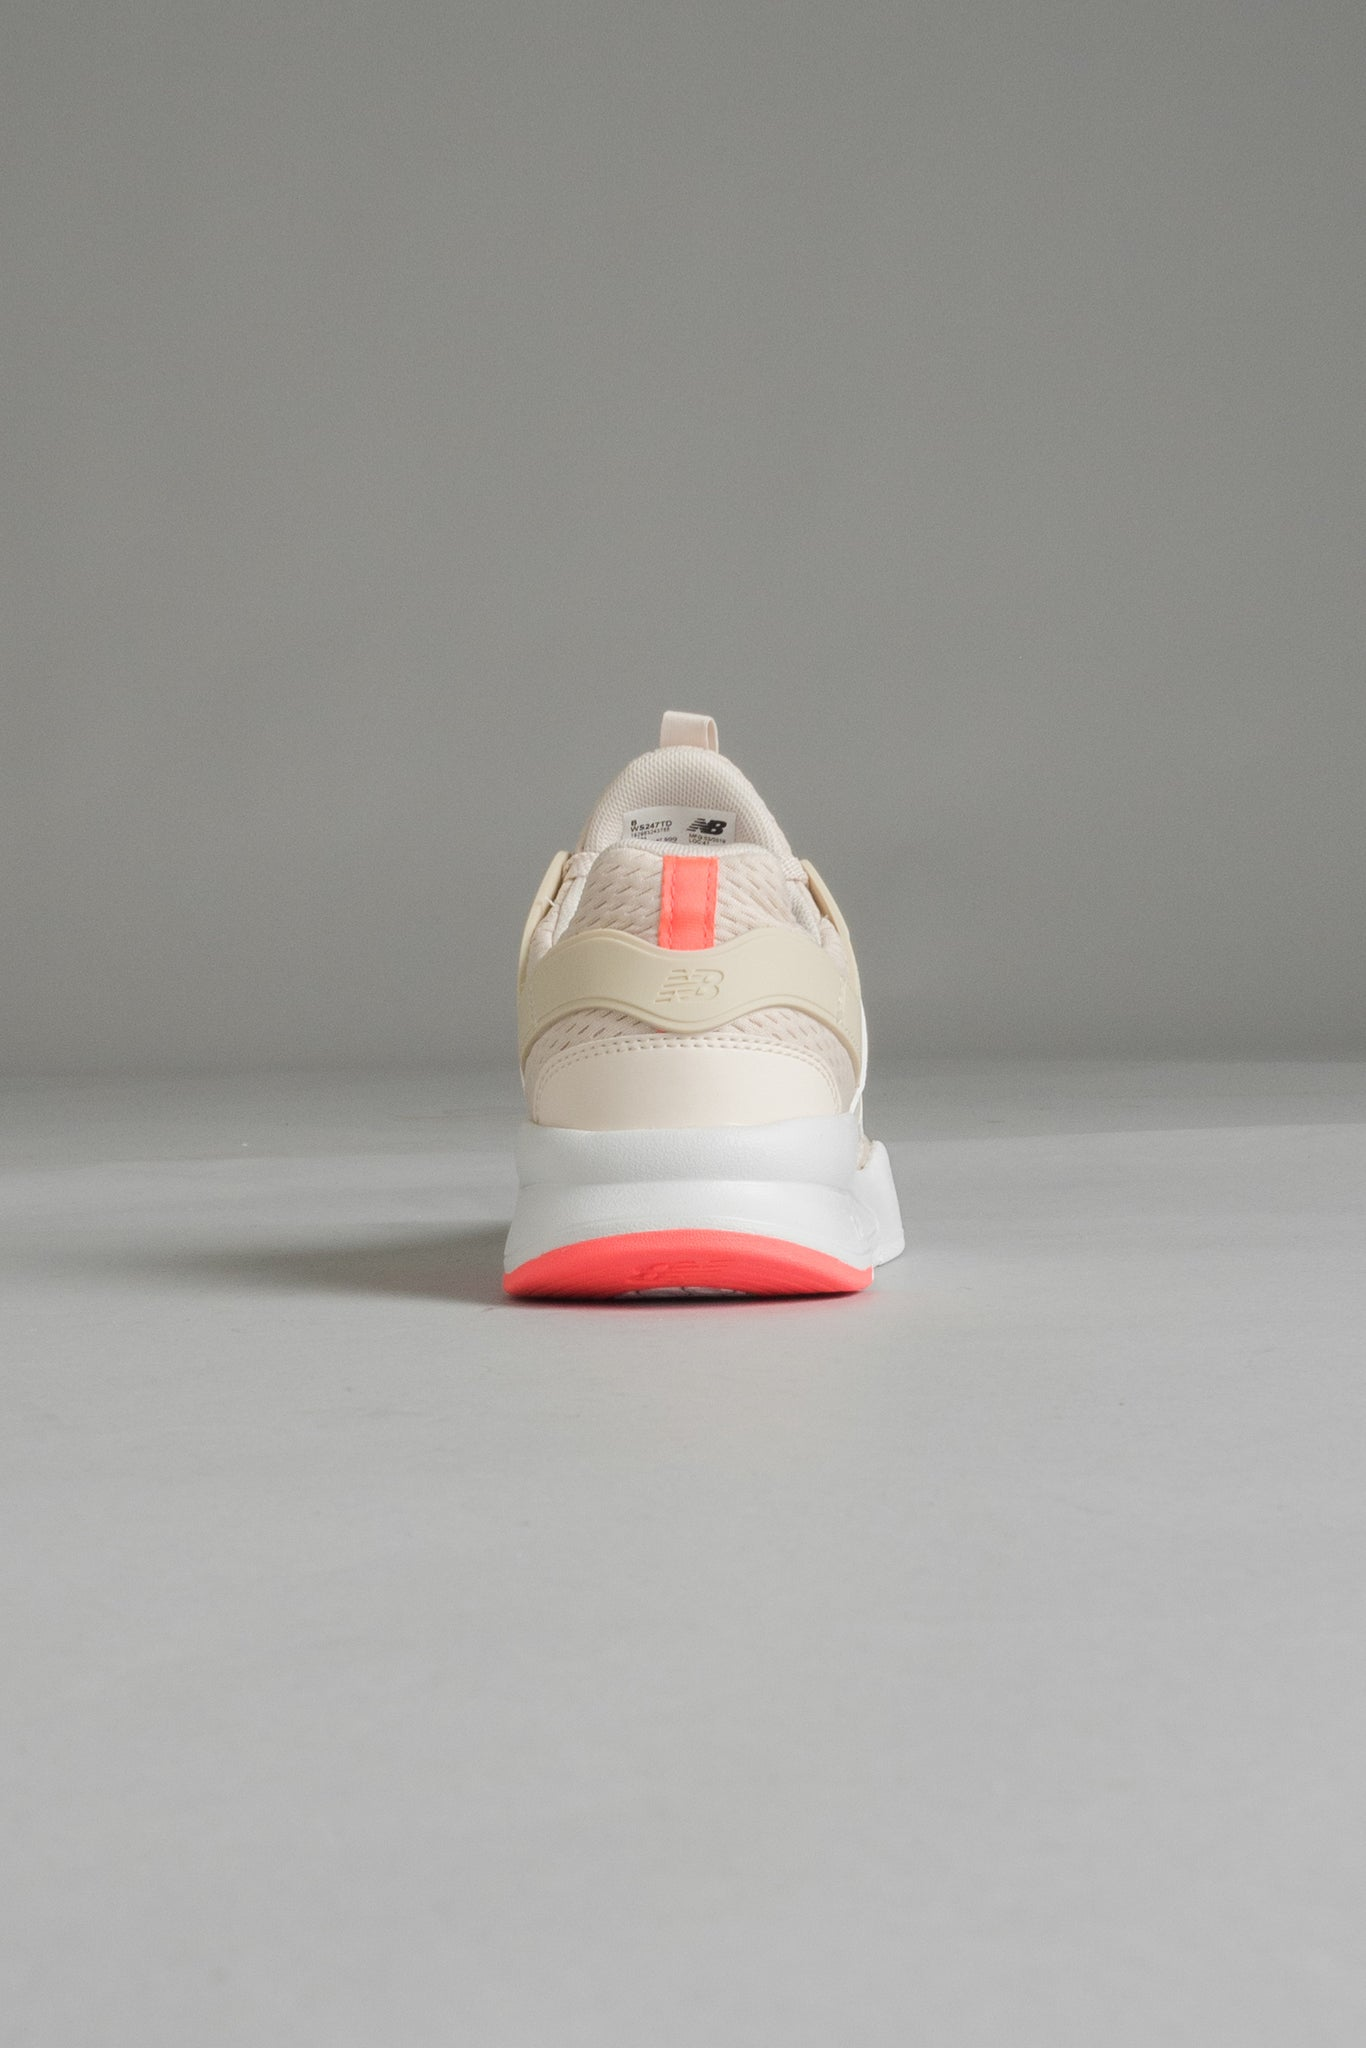 "New Balance 247 TD naisten sneakerit - nude I INCH"" Tampere"